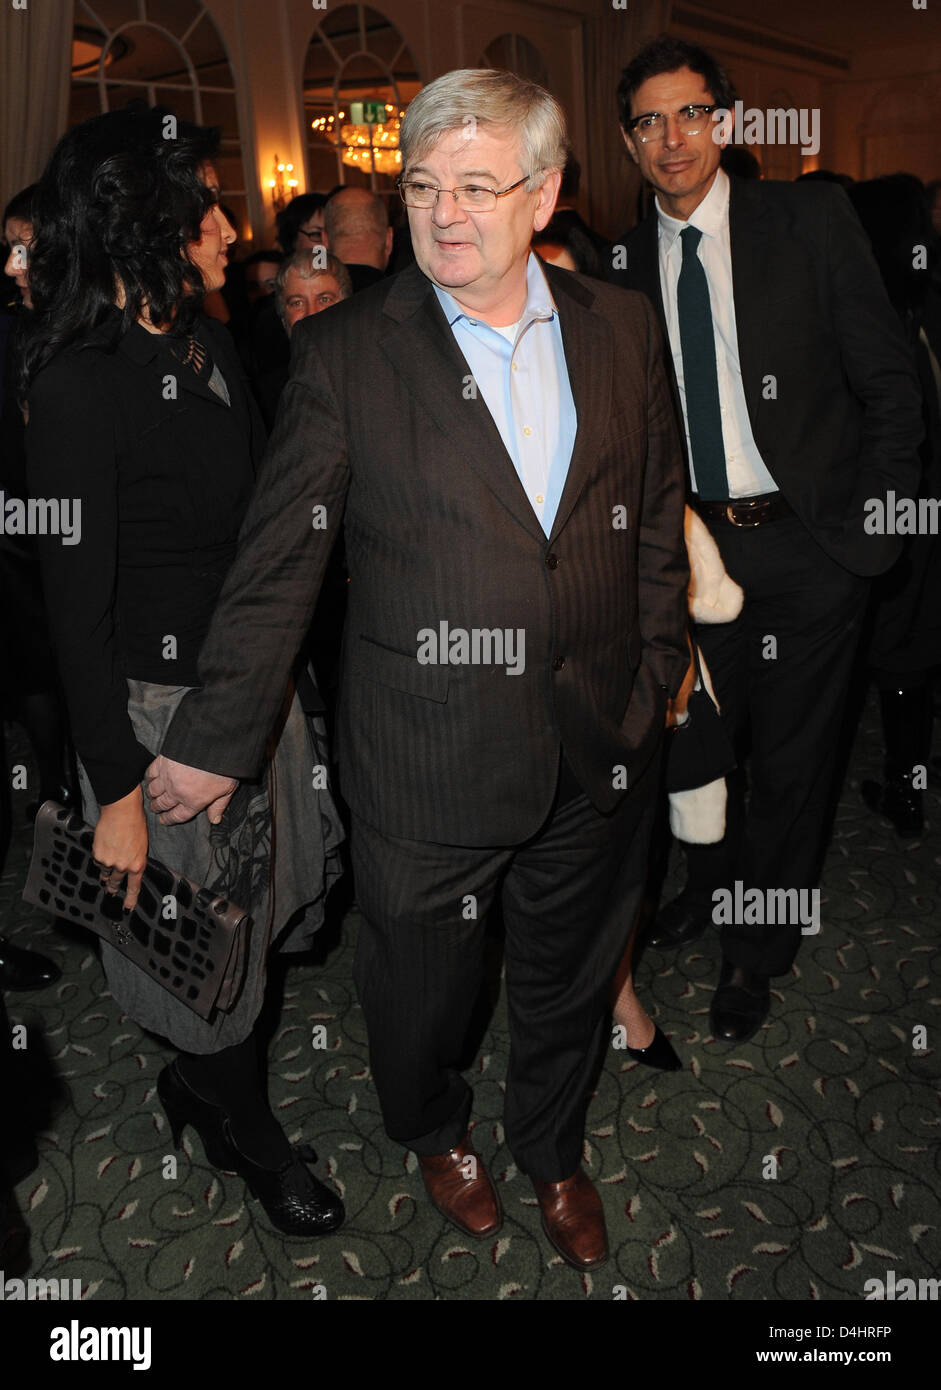 German former foreign minister Joschka Fischer (C) and his wife Minu Barati-Fischer (L) arrive for the afterparty - Stock Image